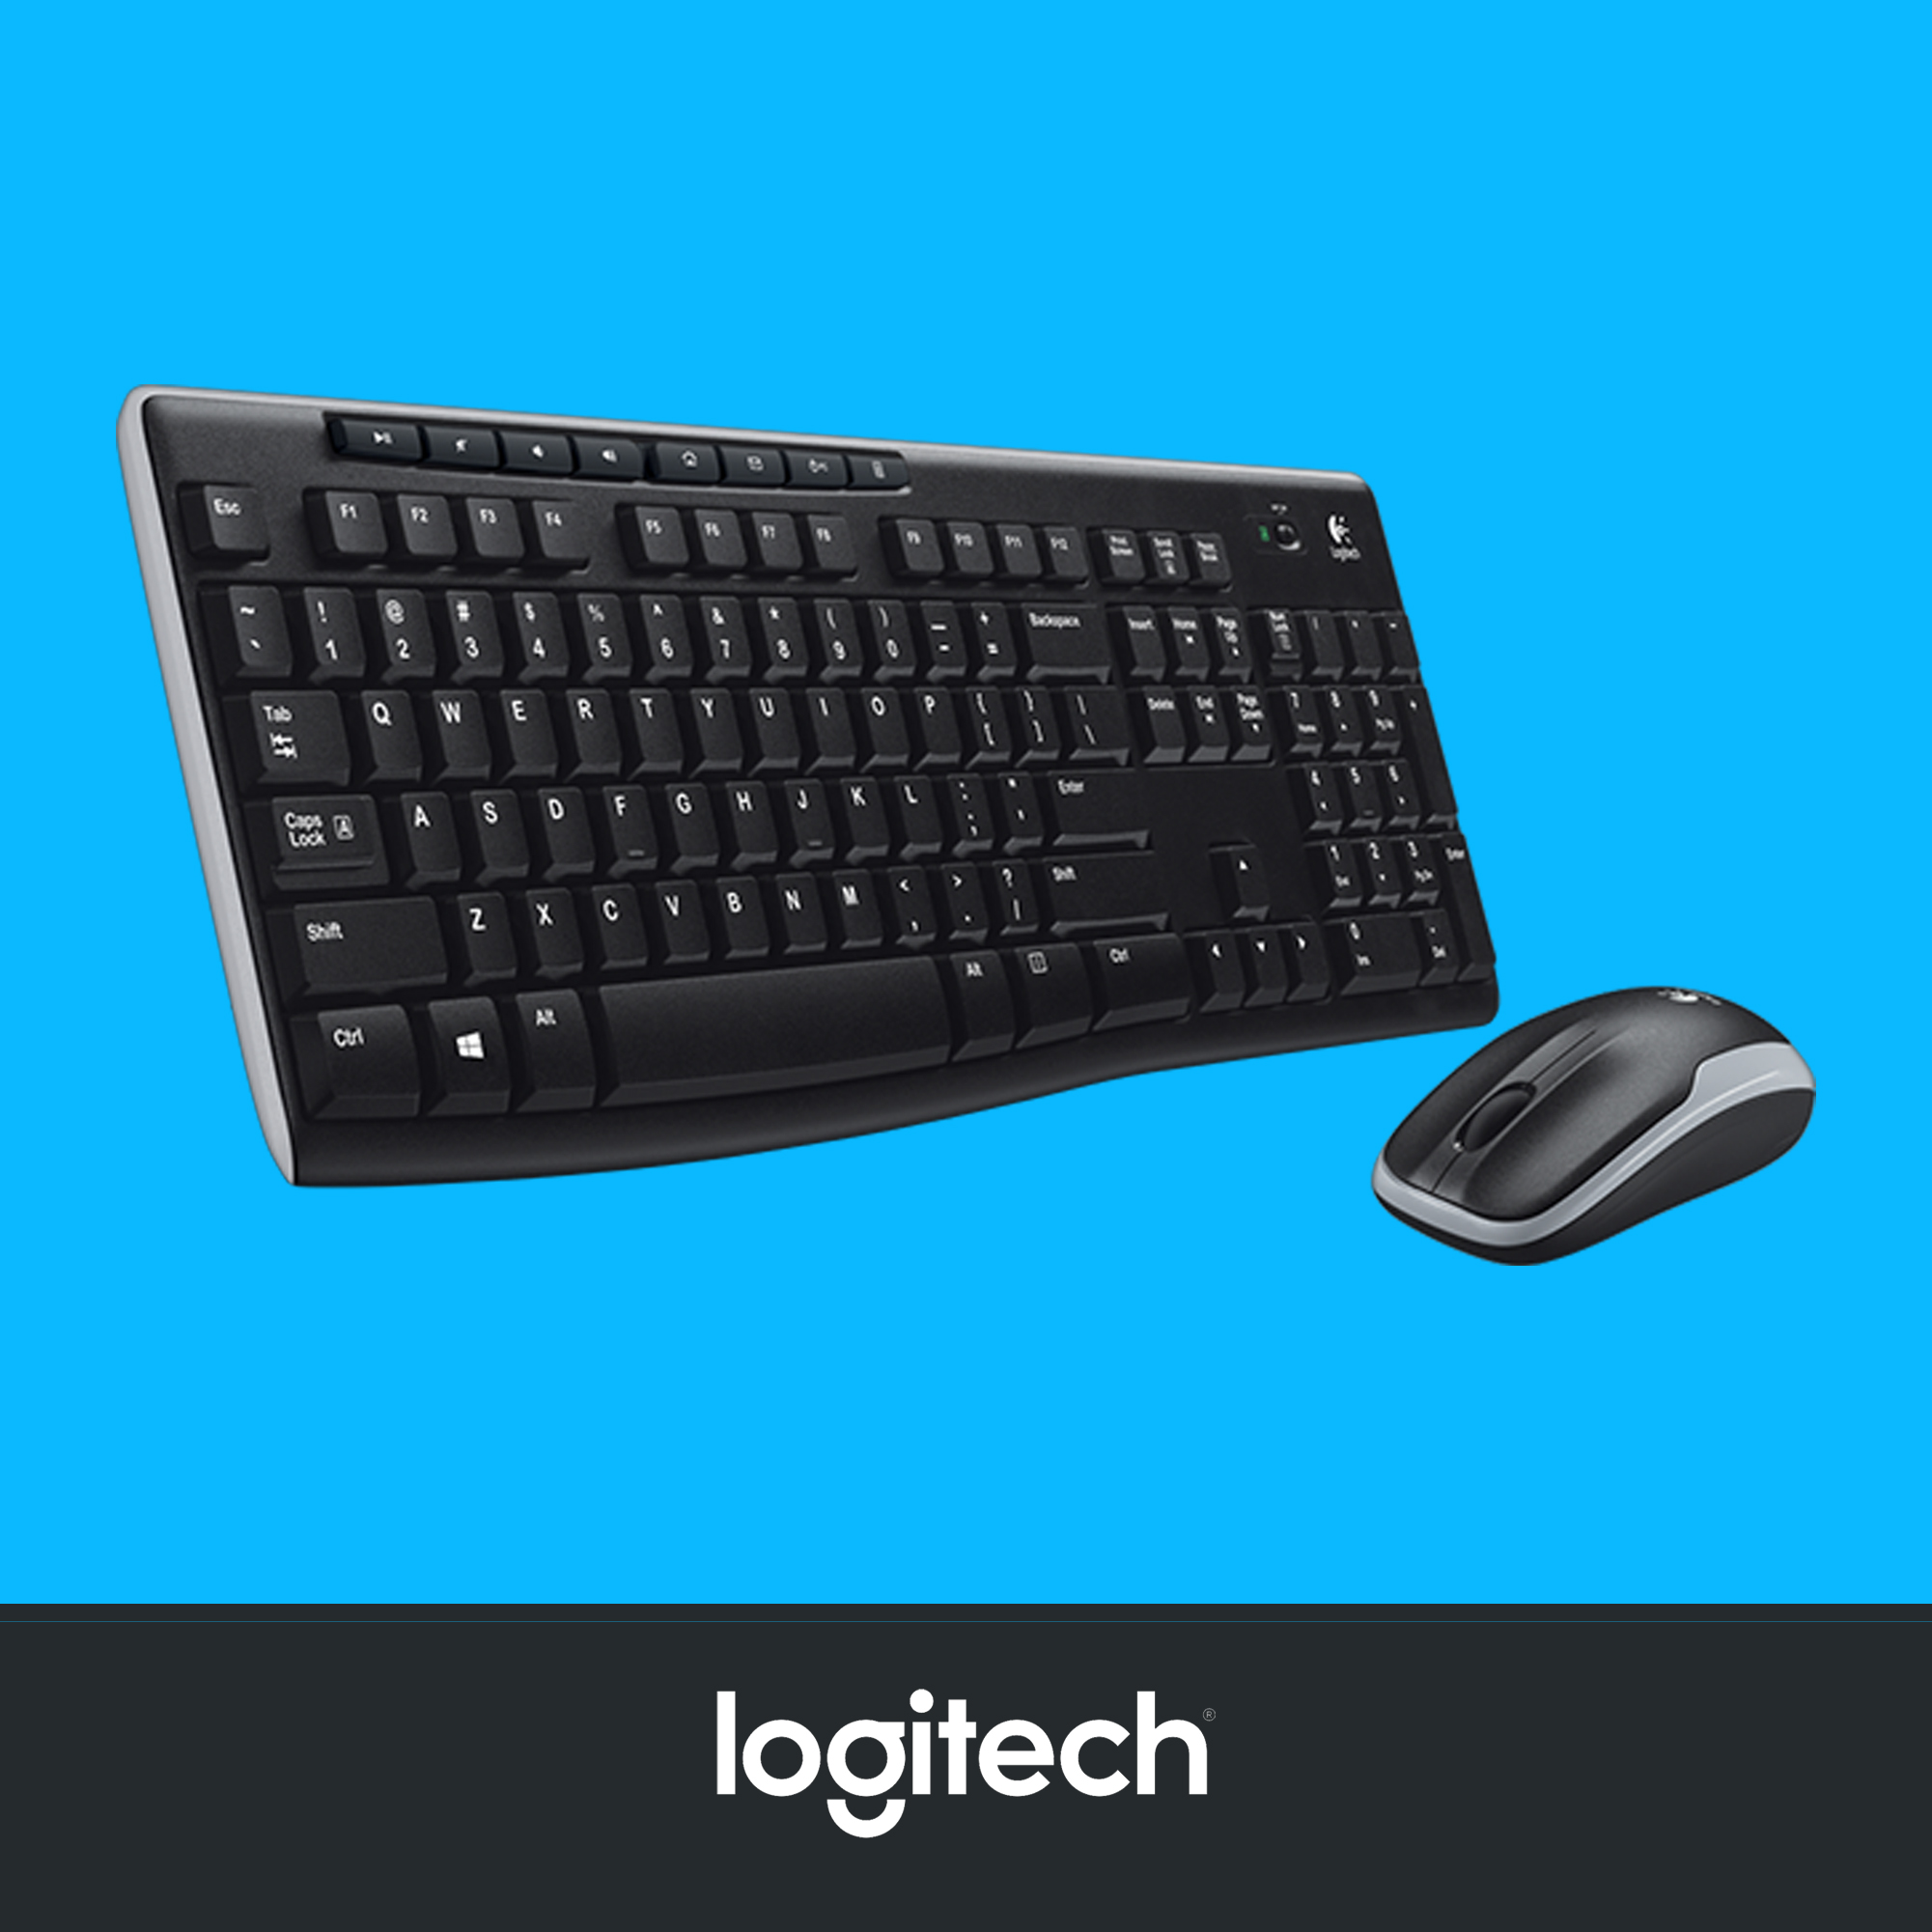 Vga Schematic Diagram furthermore VGA To The Arcade Monitor Hookup besides 119  work Usb Direct Connection together with Best Illuminated Wireless Keyboard And Mouse further Wireless Mac Mouse Pad. on logitech keyboard wiring diagram